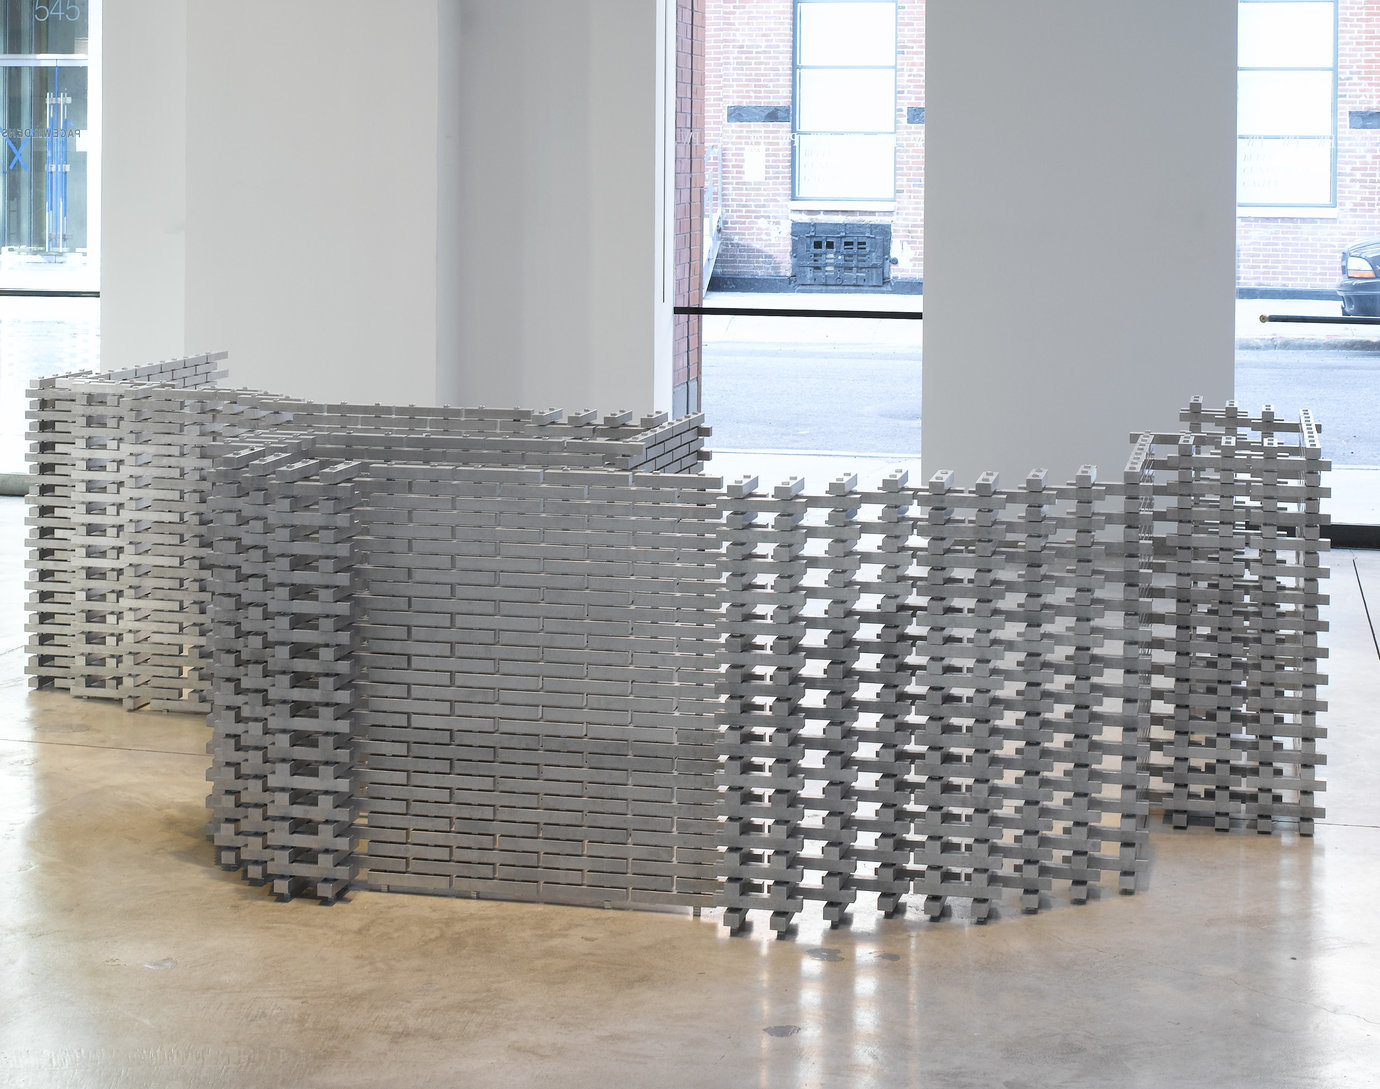 ", 2006. aluminum, stainless steel and zinc plated steel, 36"" x 12' x 10' (91.4 cm x 365.8 cm x 304.8 cm)."